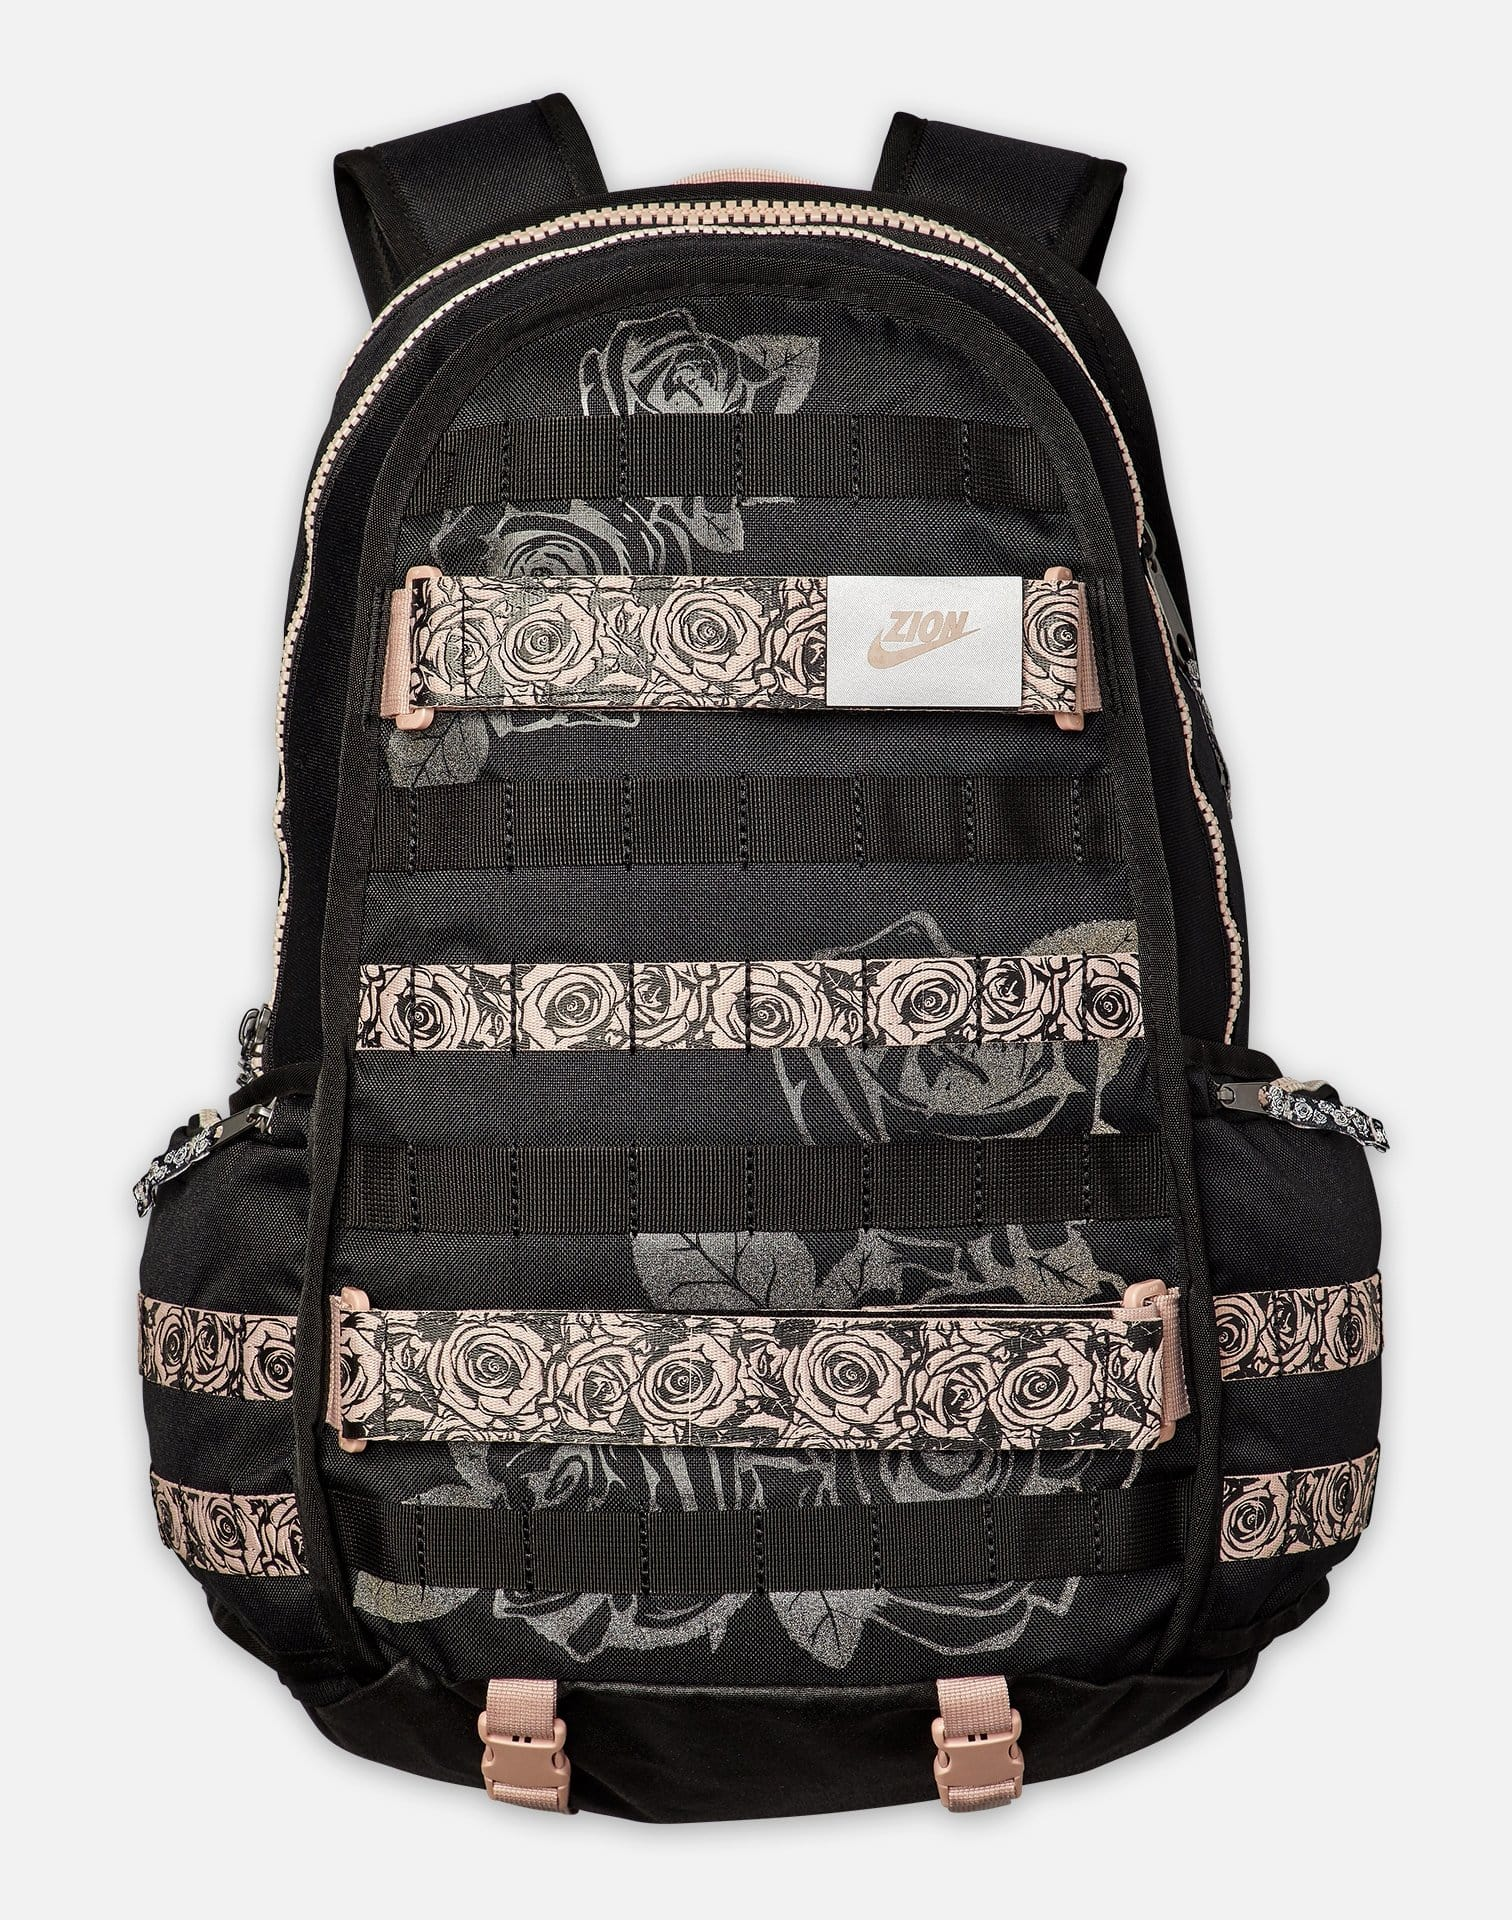 Nike ZION SB DOERNBECHER SKATE BACKPACK